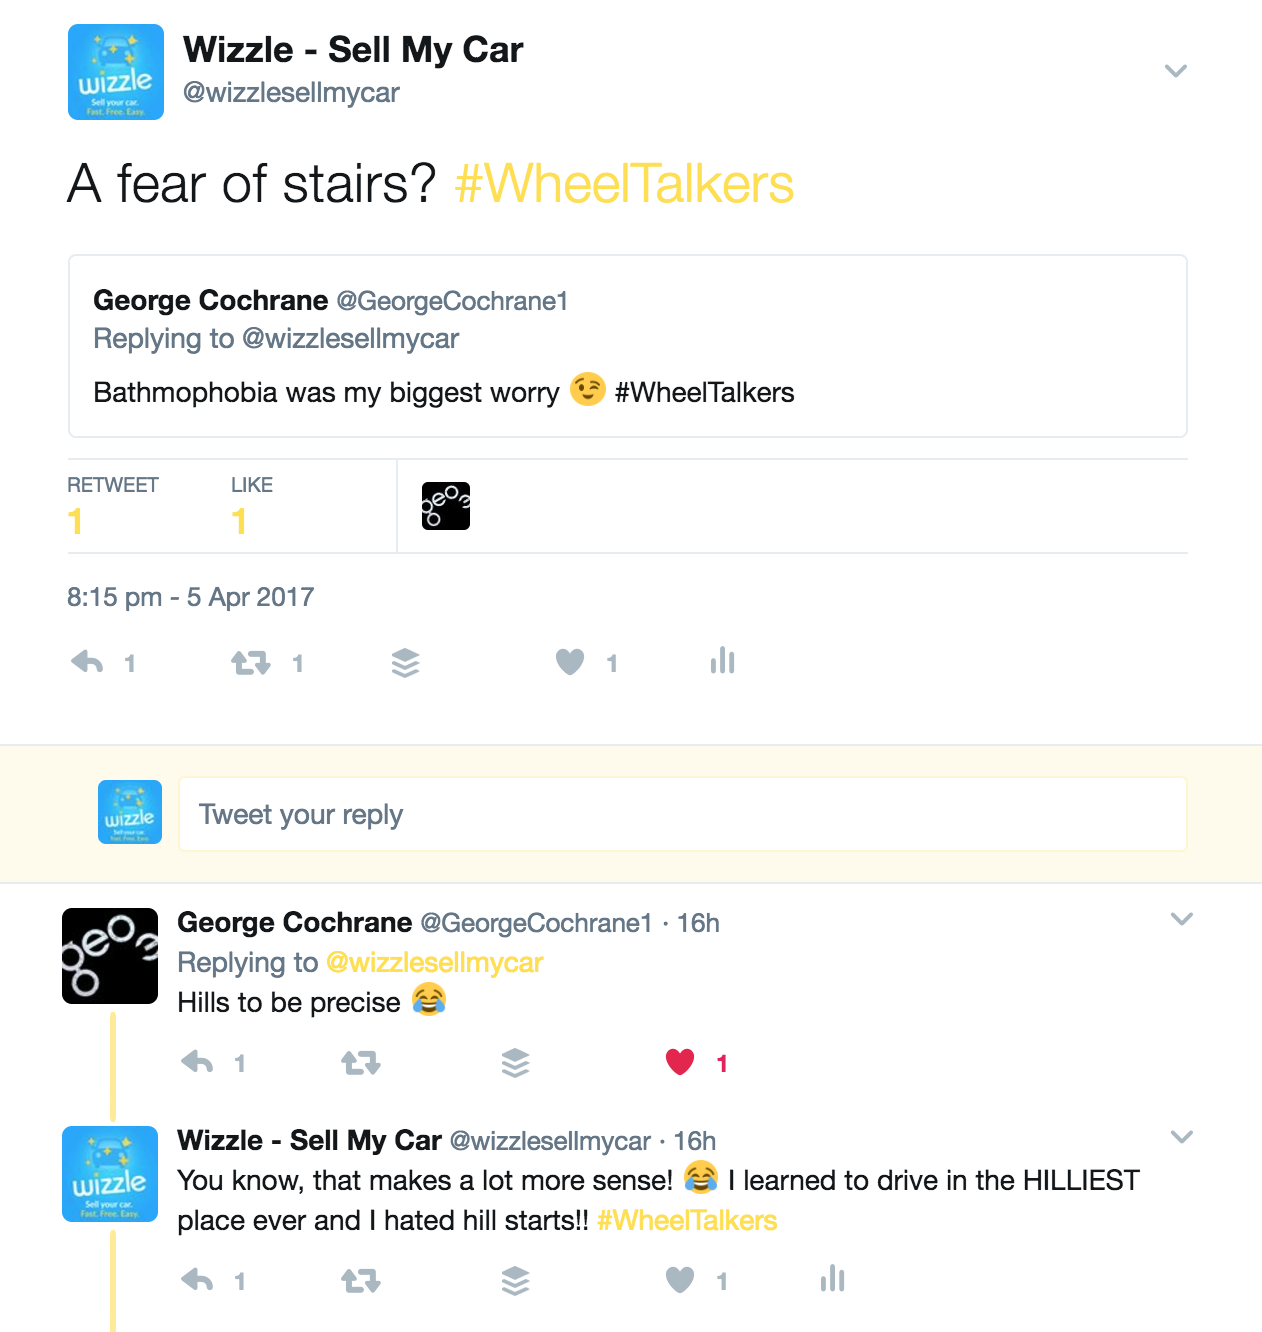 Tweets about hill starts